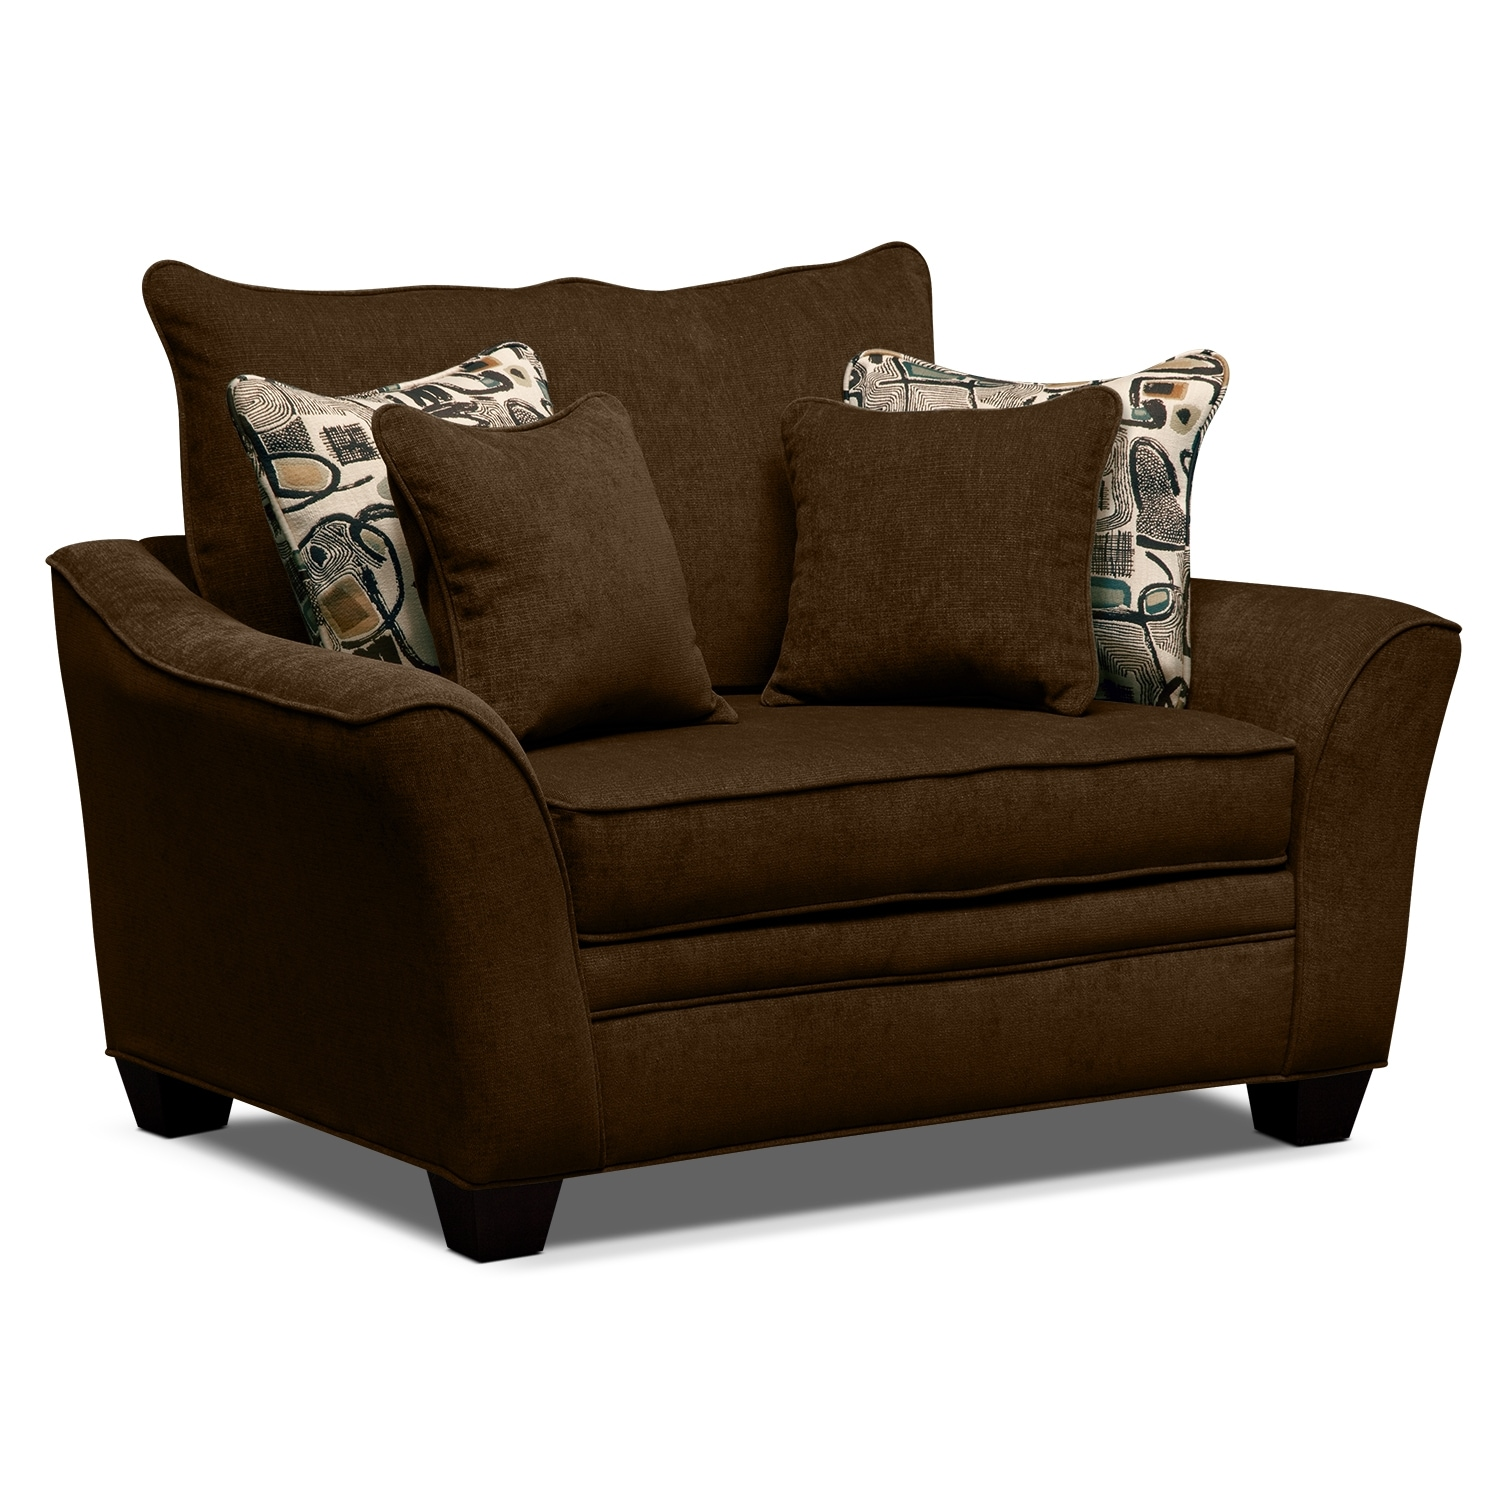 Living Room Furniture - Mandalay Chair and a Half